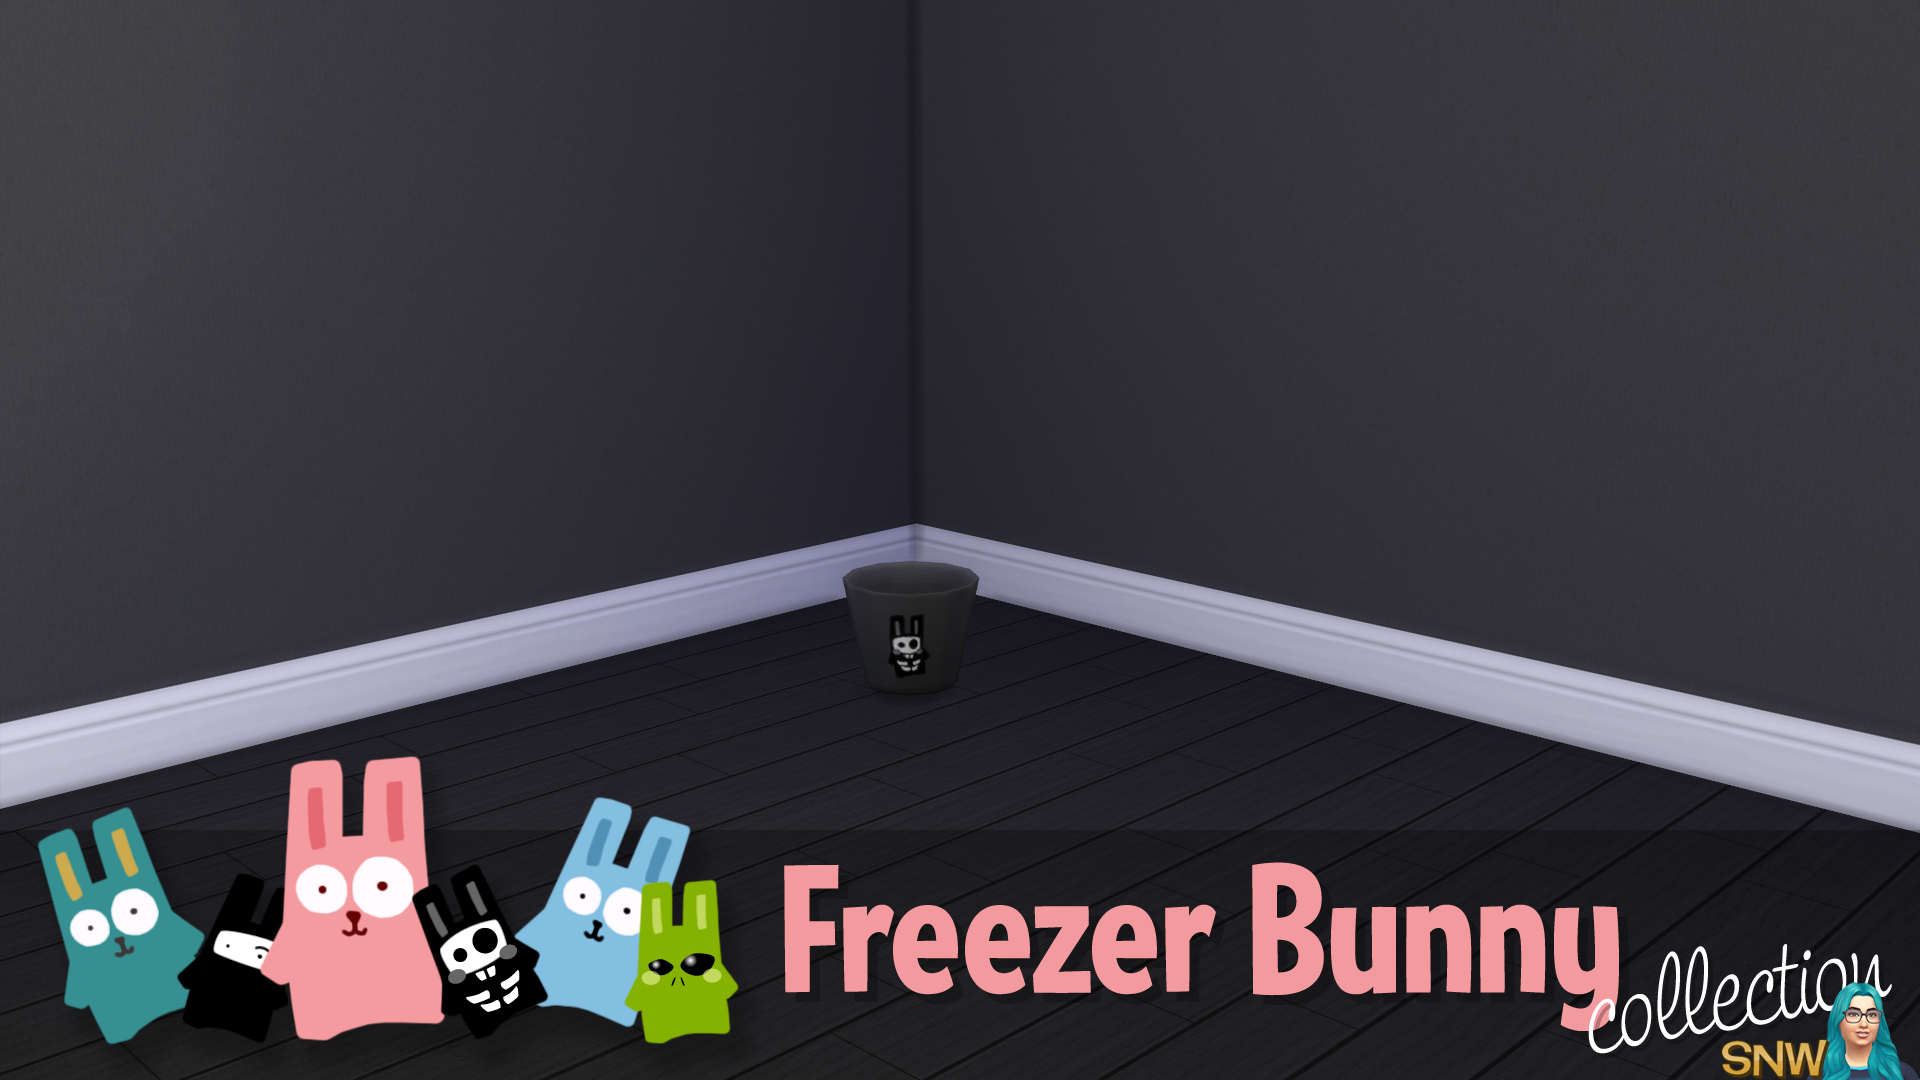 Freezer Bunny Collection: Trash Can